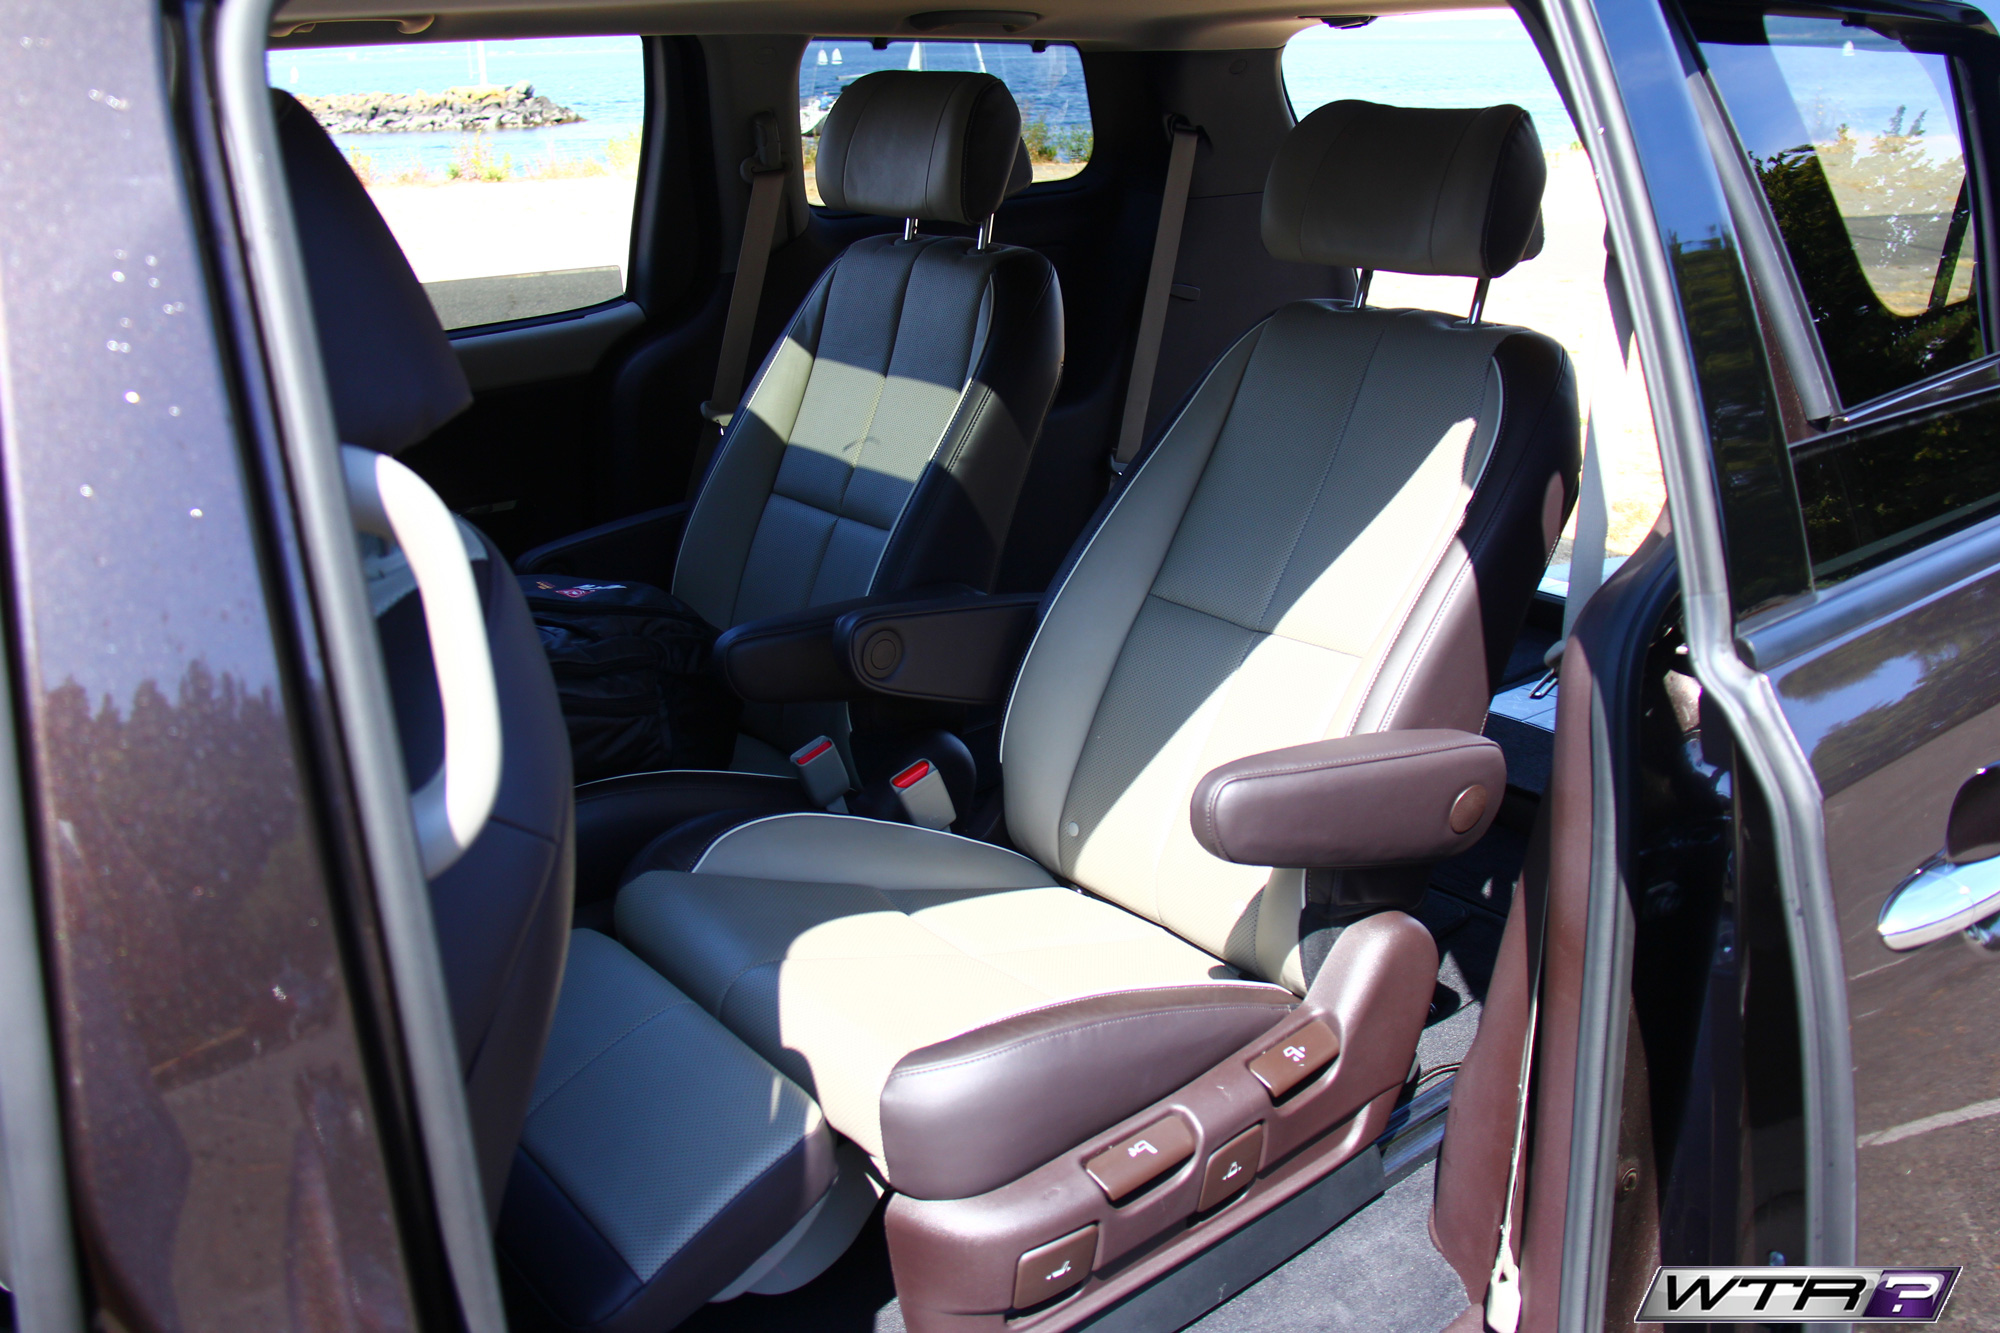 2016_kia_sedona_interior_second_row_seats